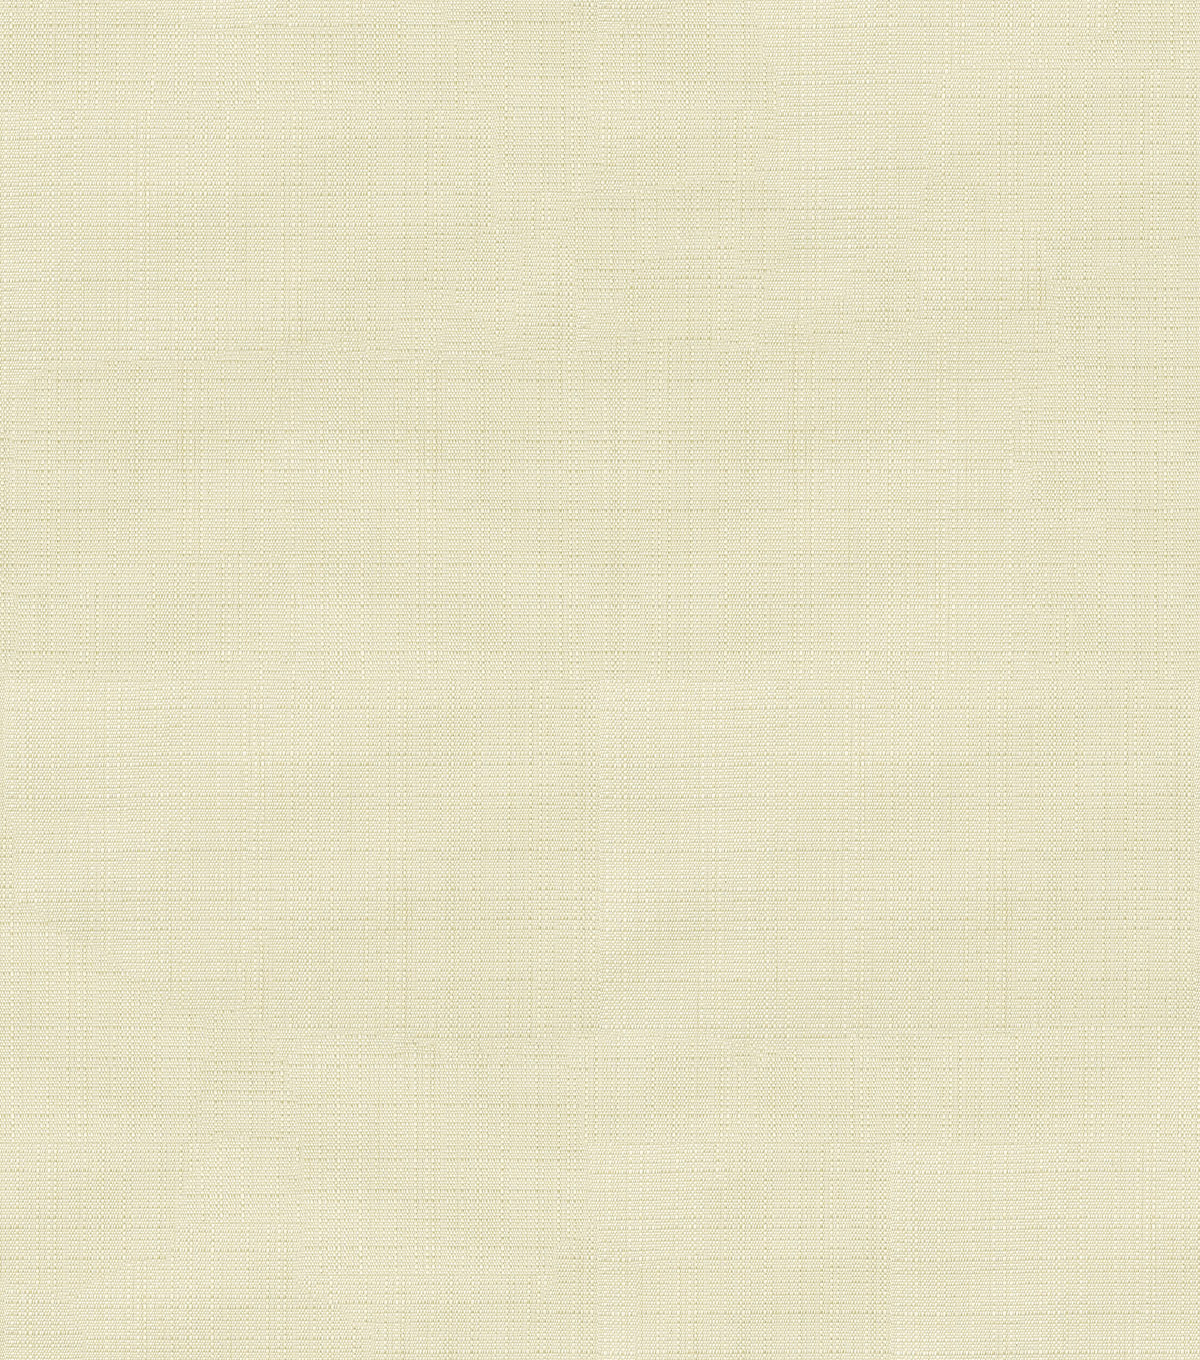 Sunbrella Outdoor Fabric 54\u0022-Linen Canvas